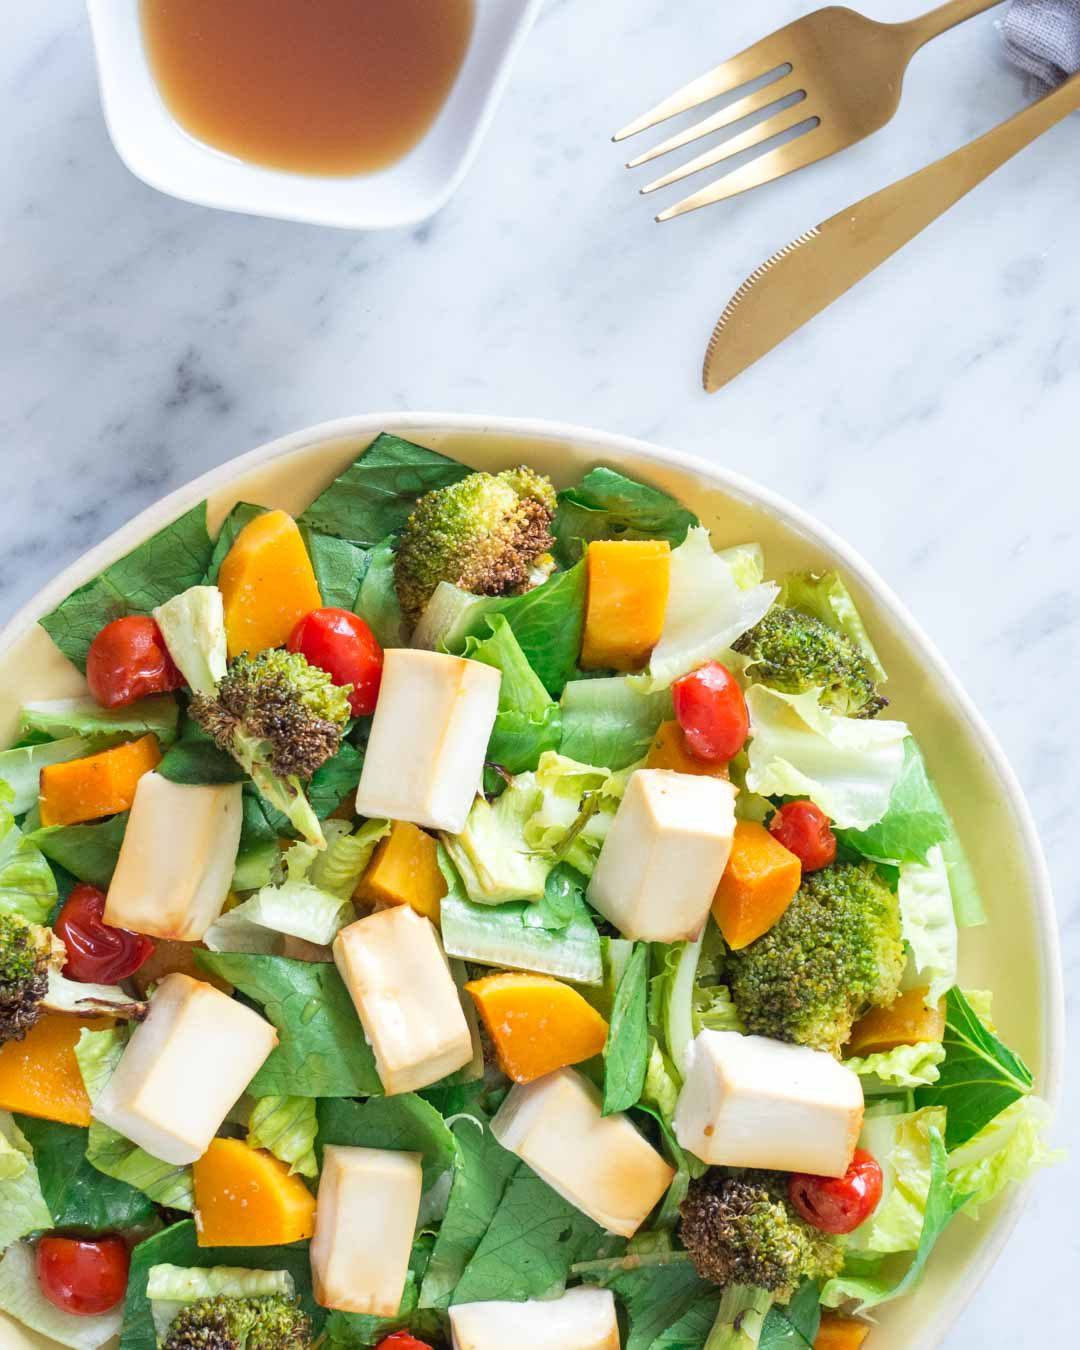 tofu salad on a plate with a bowl of salad dressing and a fork and a knife